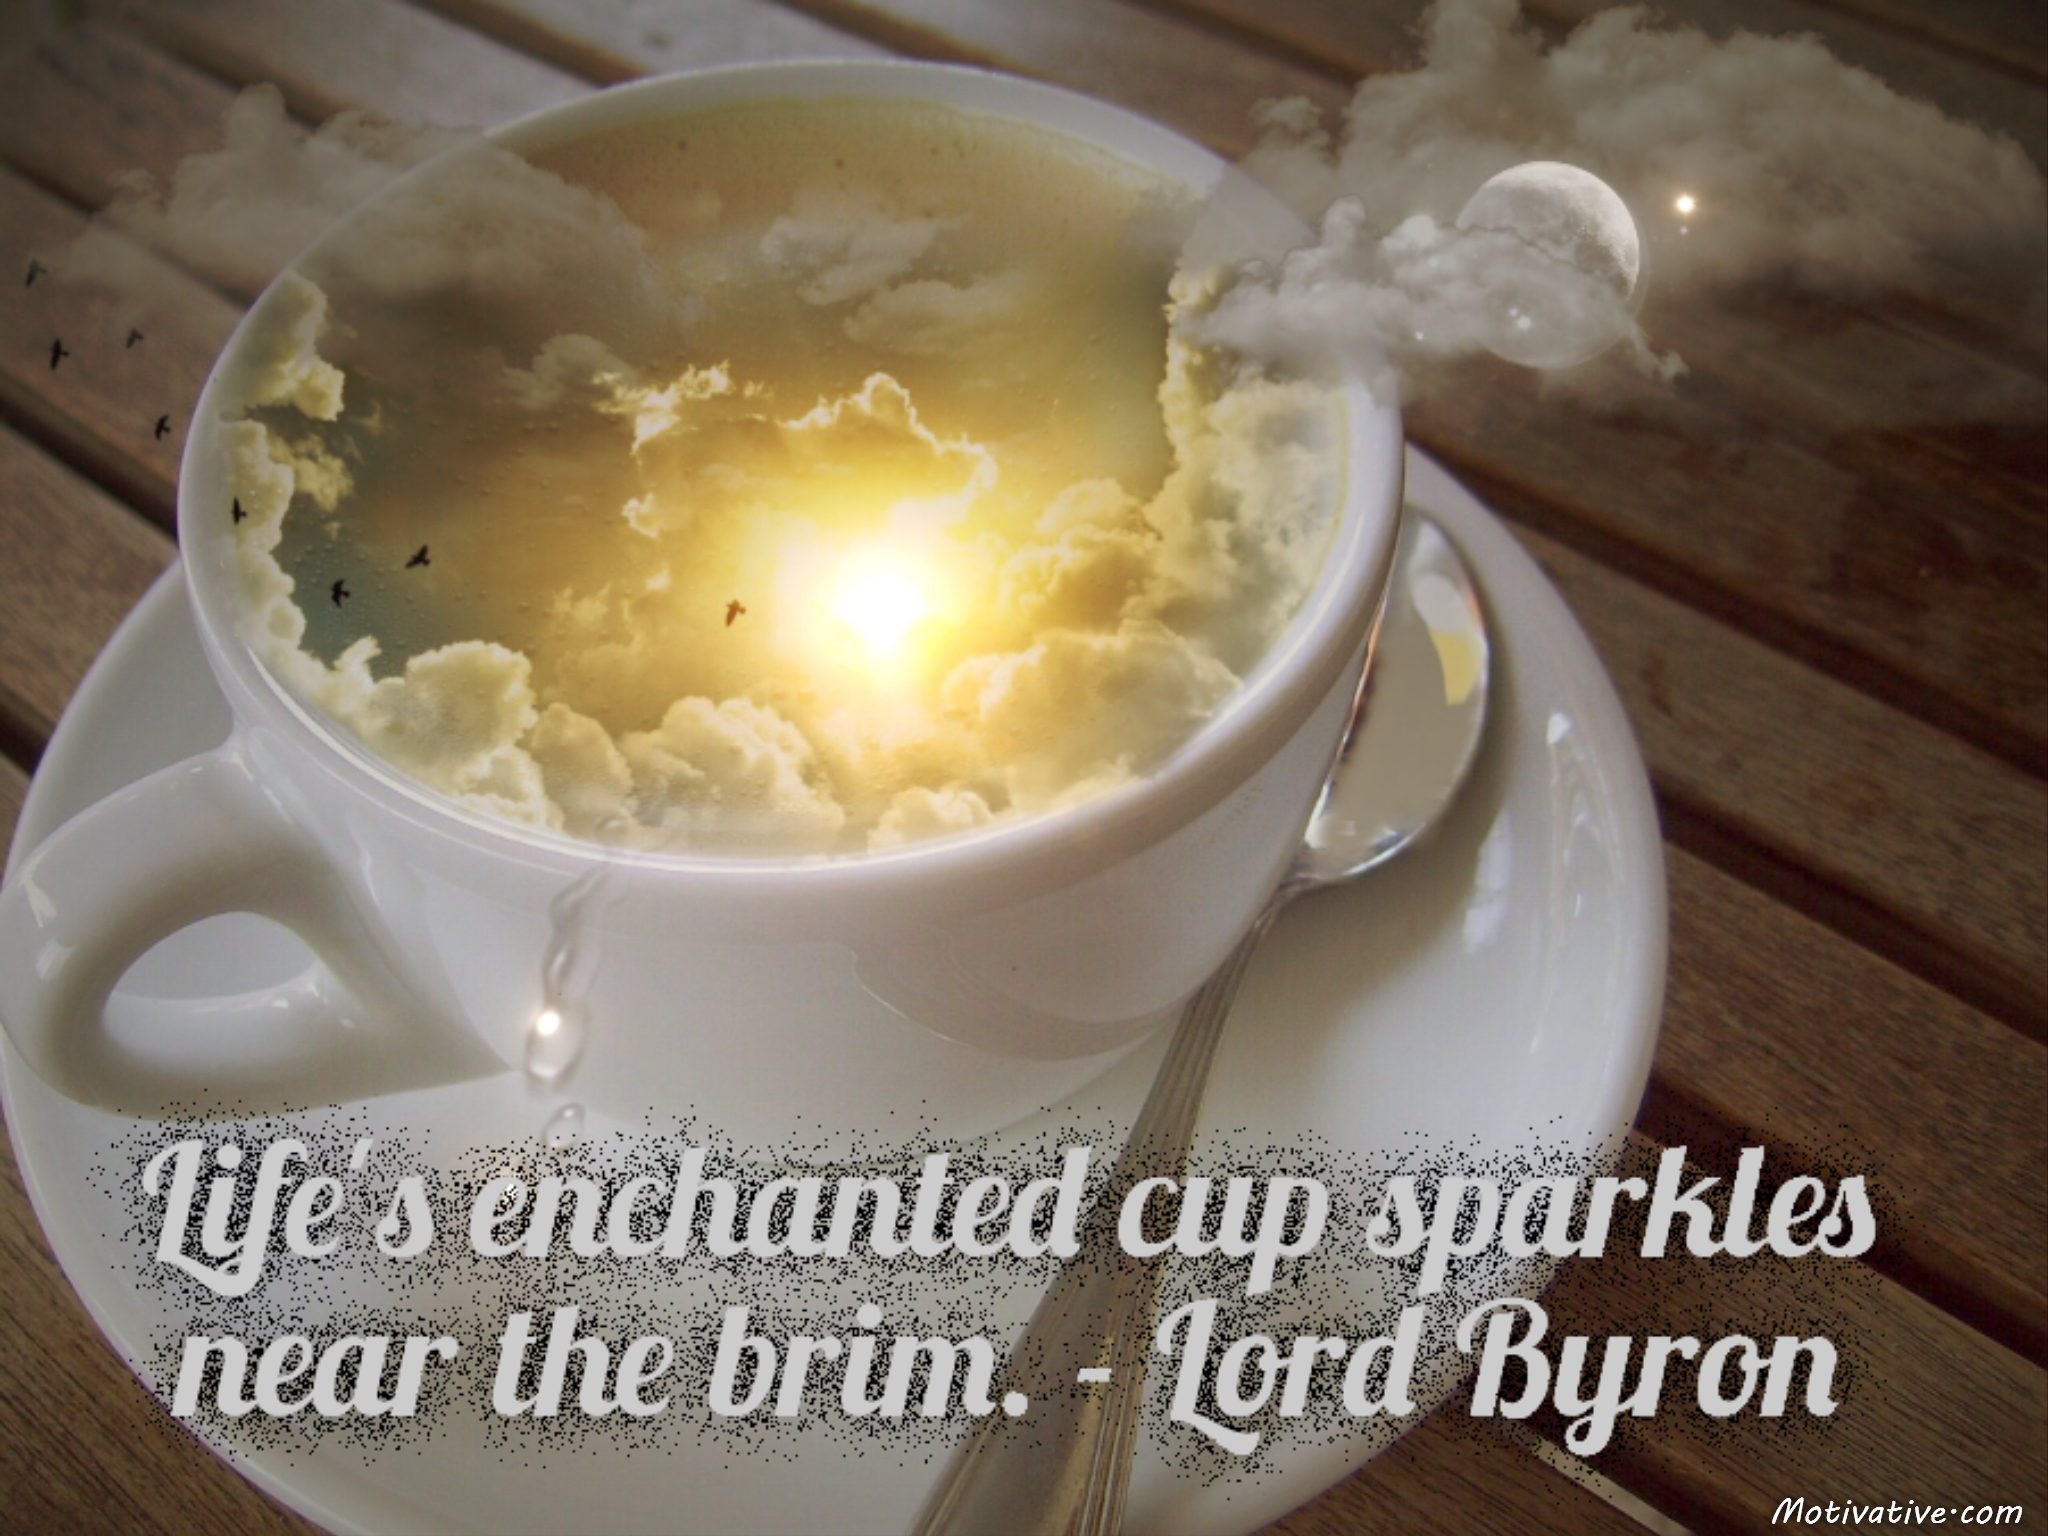 Life's enchanted cup sparkles near the brim. – Lord Byron